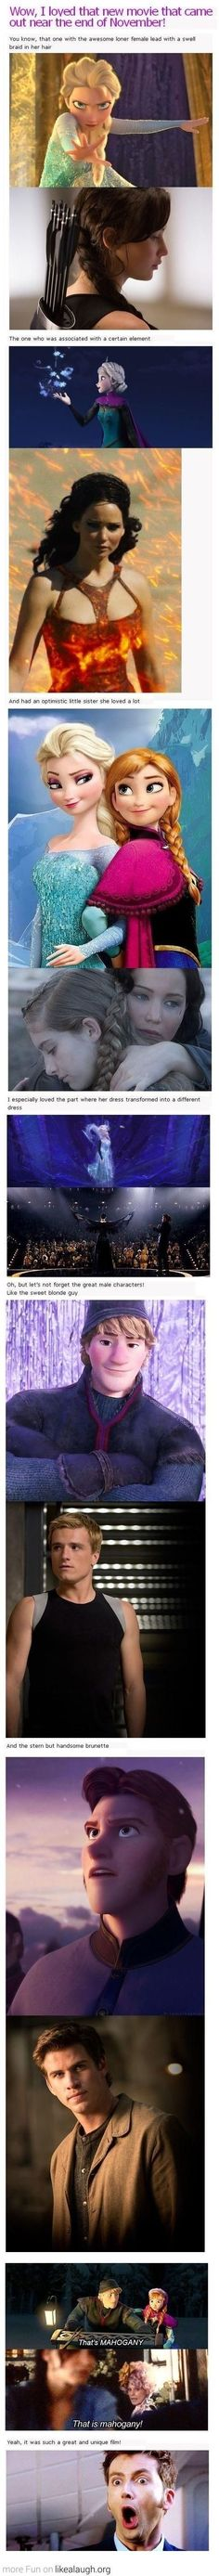 Frozen vs Hunger Games